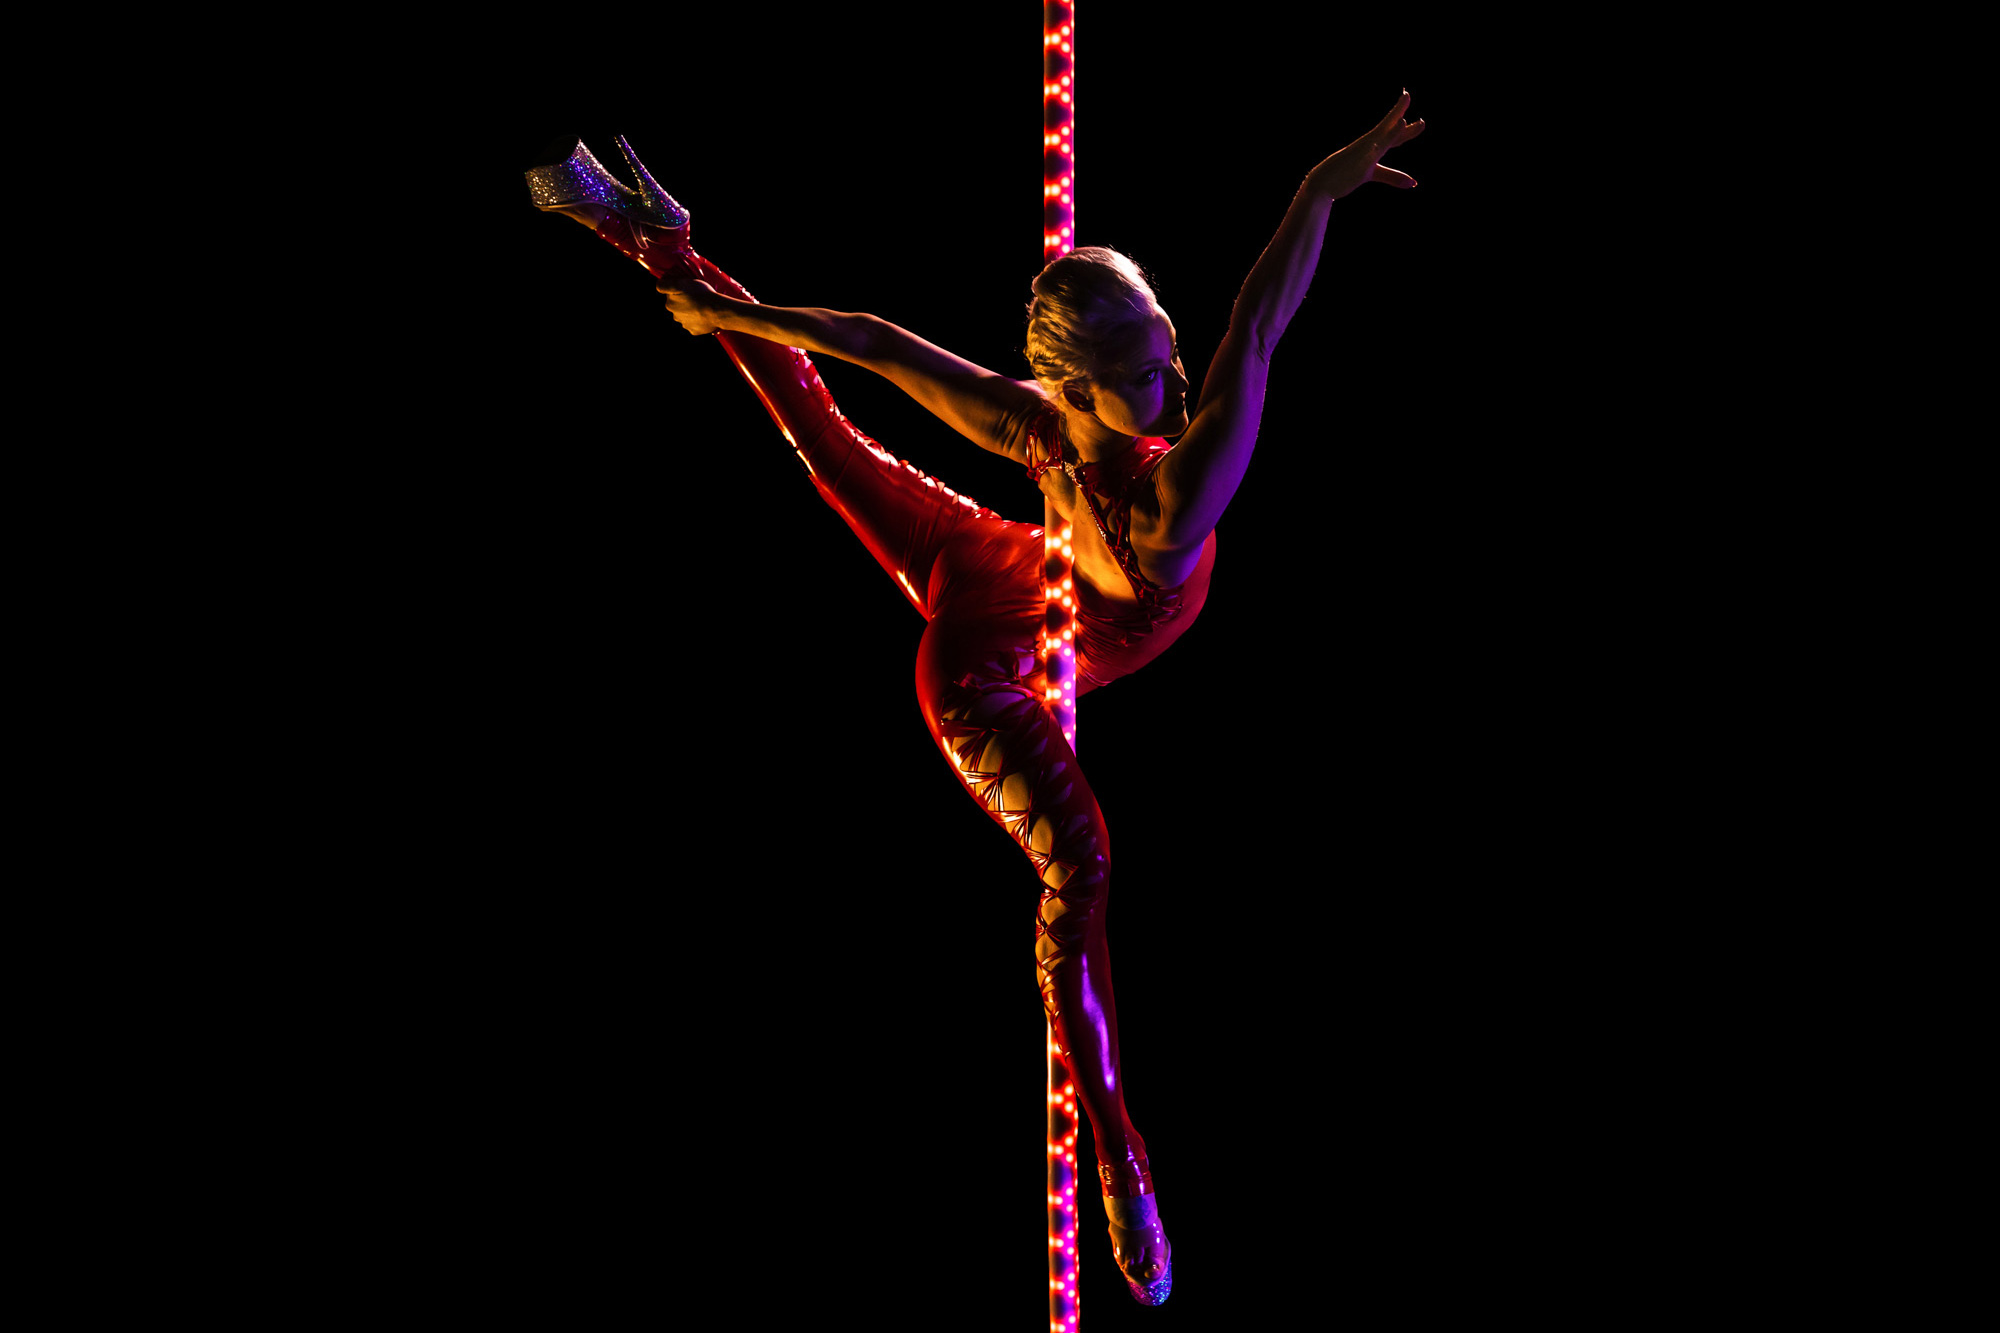 PoleFX LED Dance Pole 1